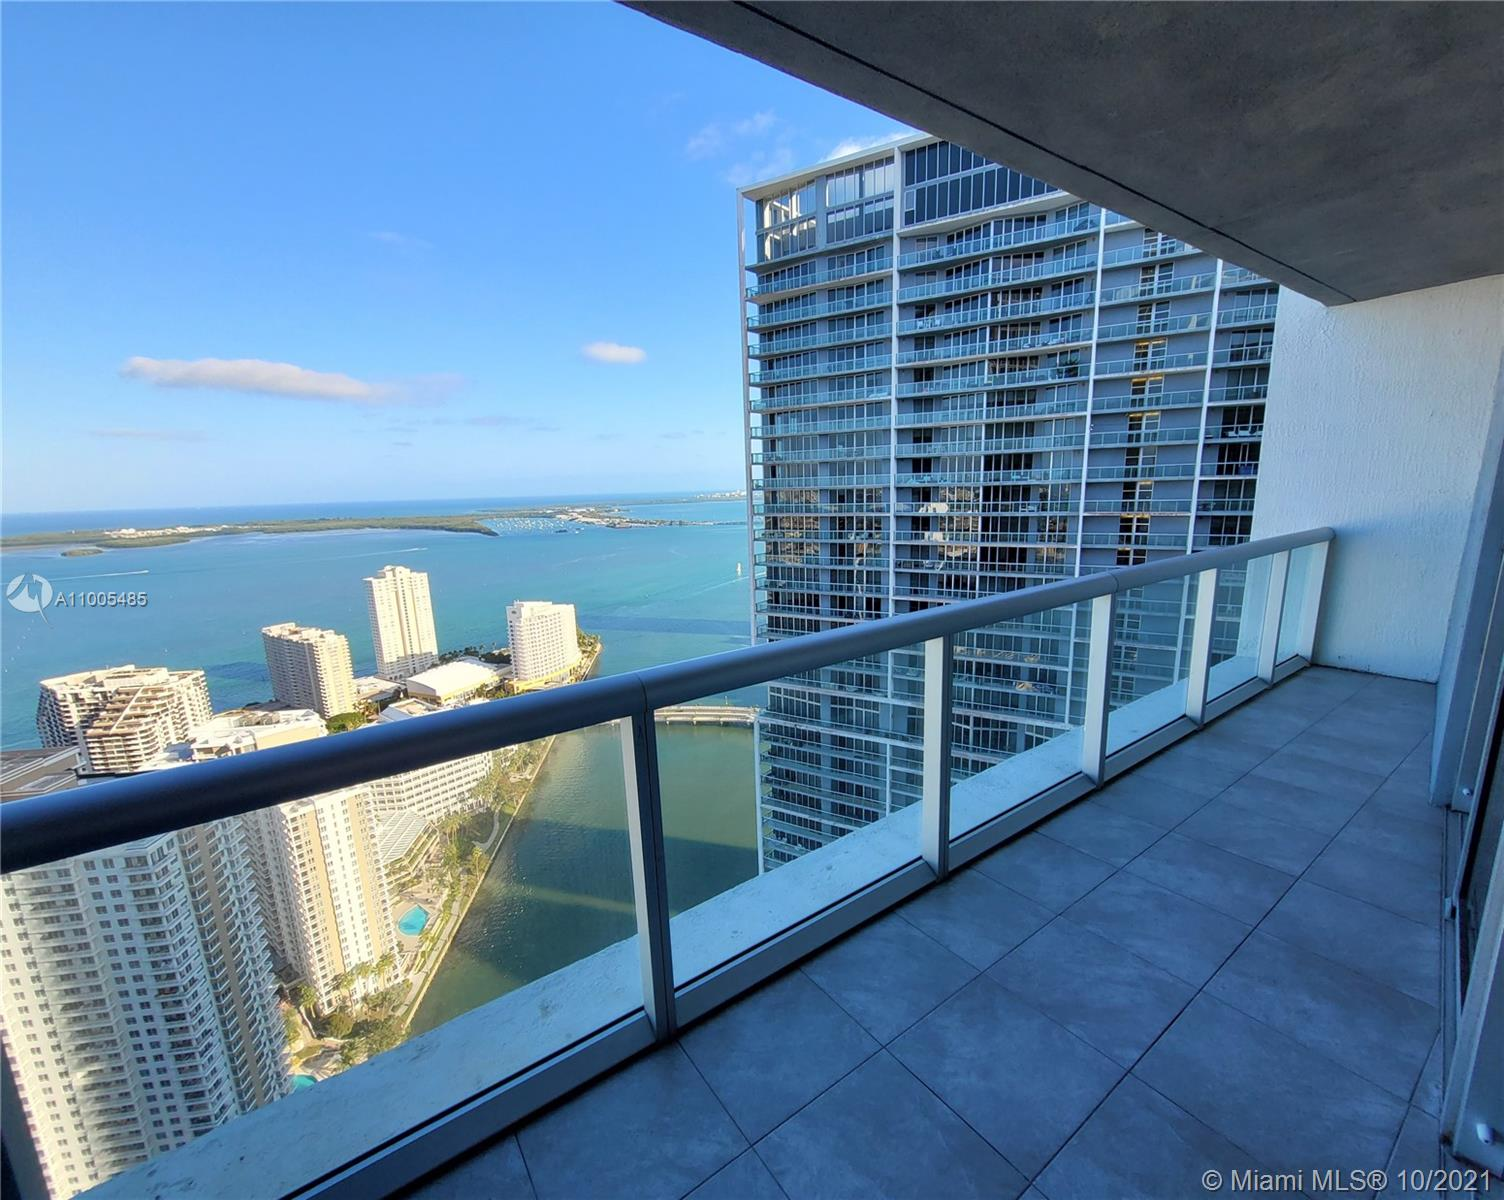 Breathtaking views of the bay, beautiful sky and Miami River. Spacious unit. 2/2 plus den. Top of the line amenities. Walking distance to restaurants and shops, Brickell city center.